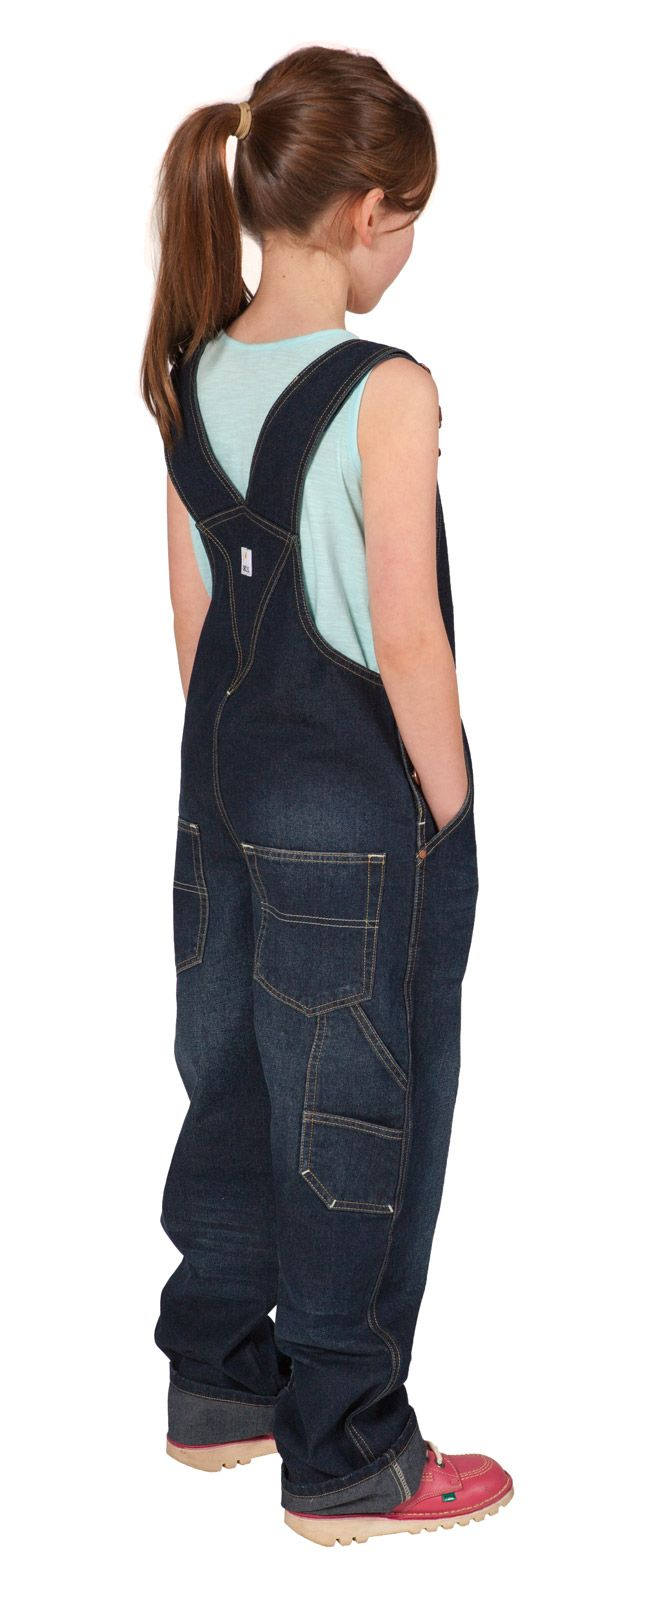 USKEES Girls Denim Dungarees (Darkwash) Age 4-14 years from #dungareespecialists…